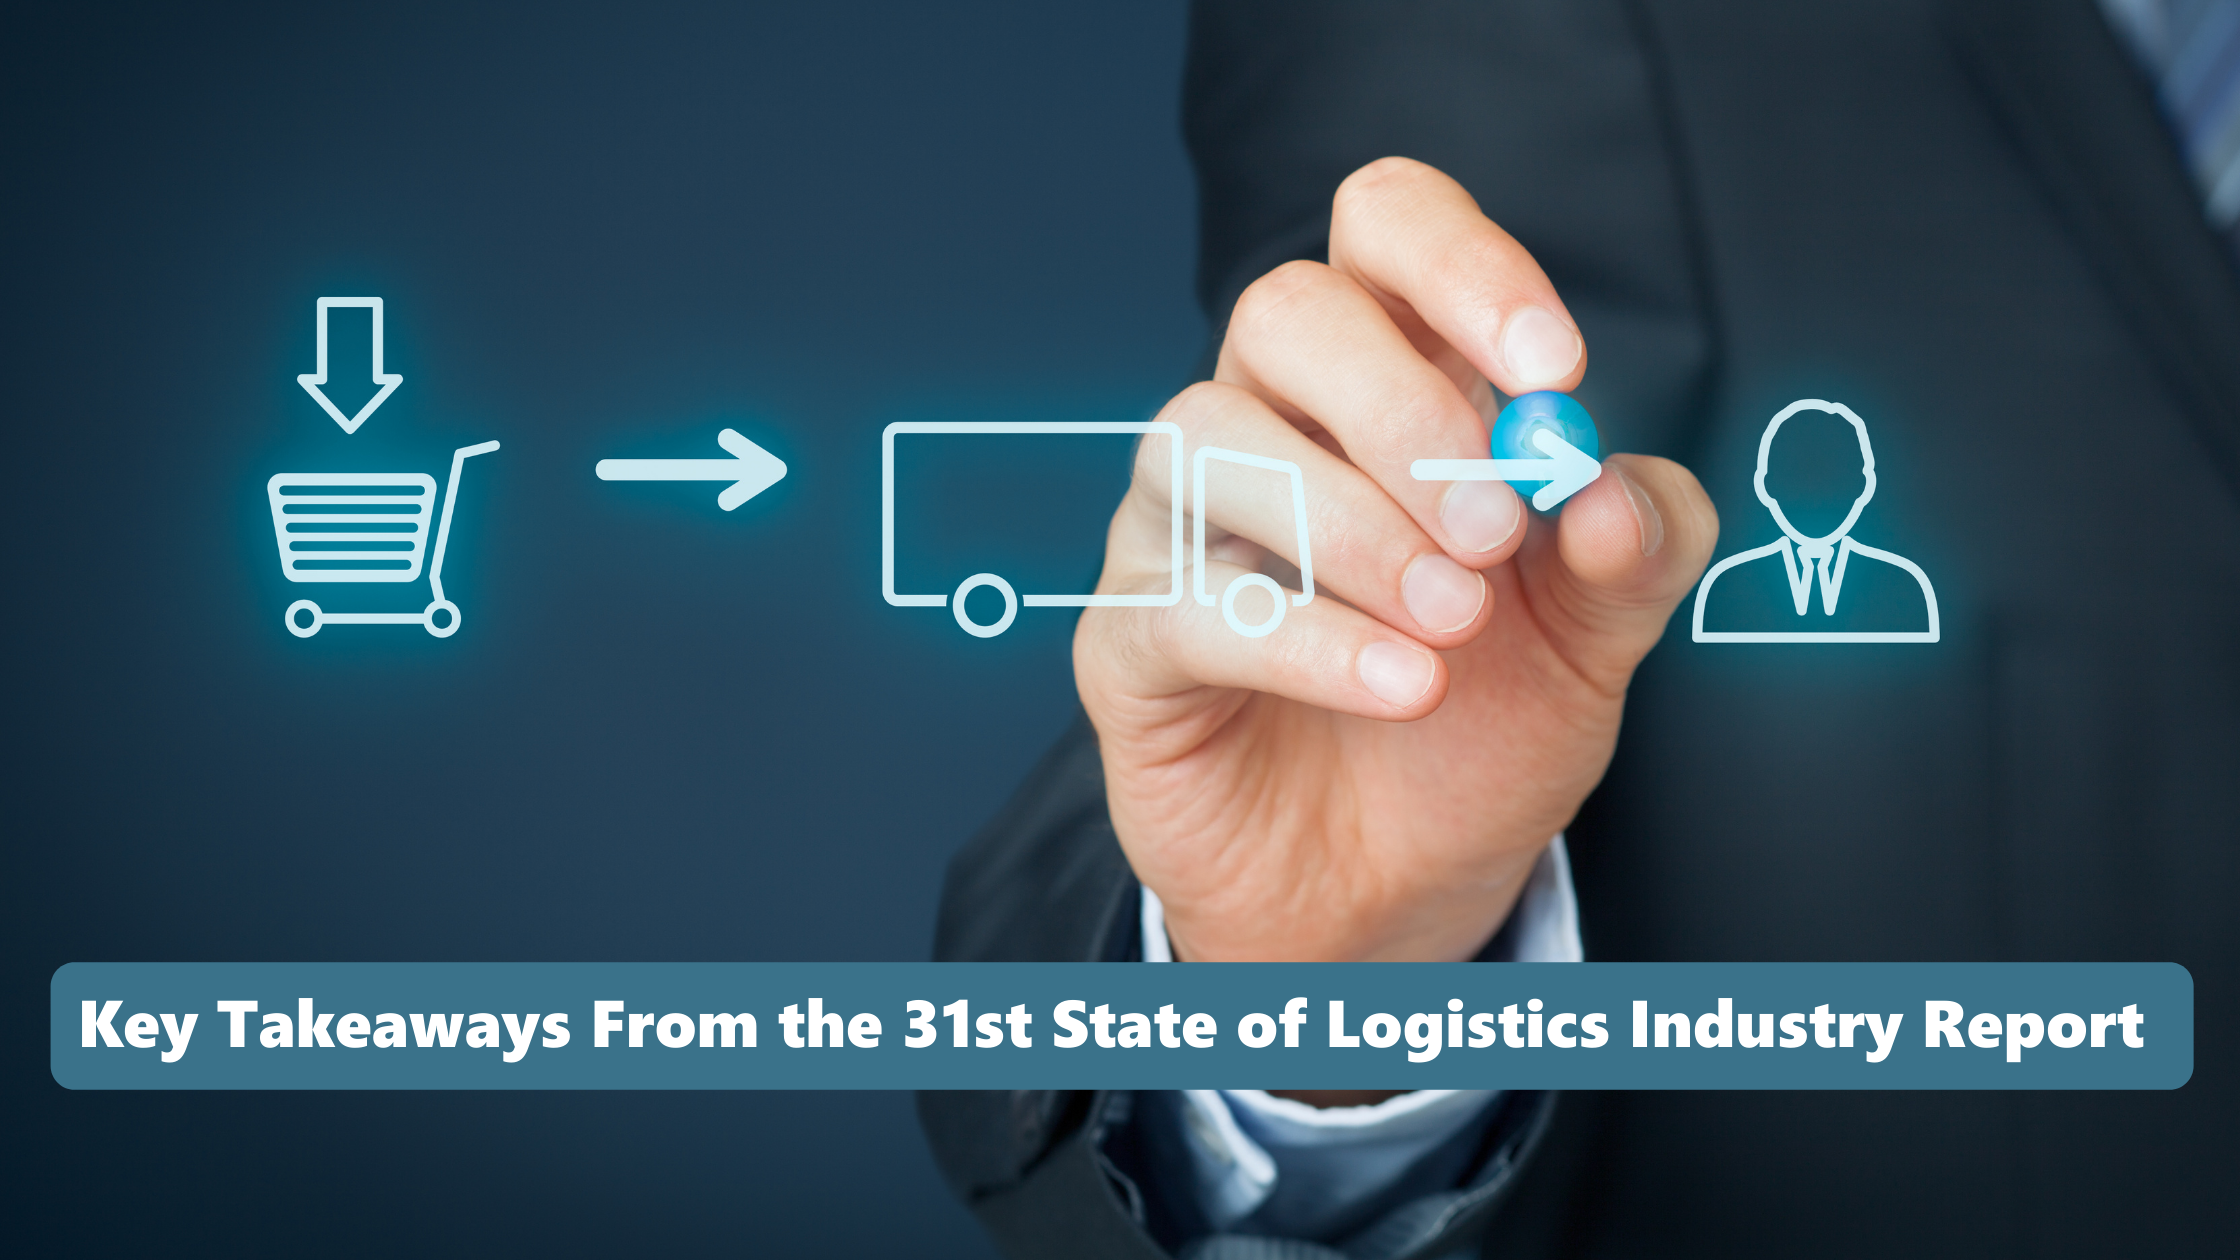 Key-takeaways-from-the-31st-state-of-logistics-industry-report-text-on-hand-drawing-logistics-icons-shopping-cart-truck-person